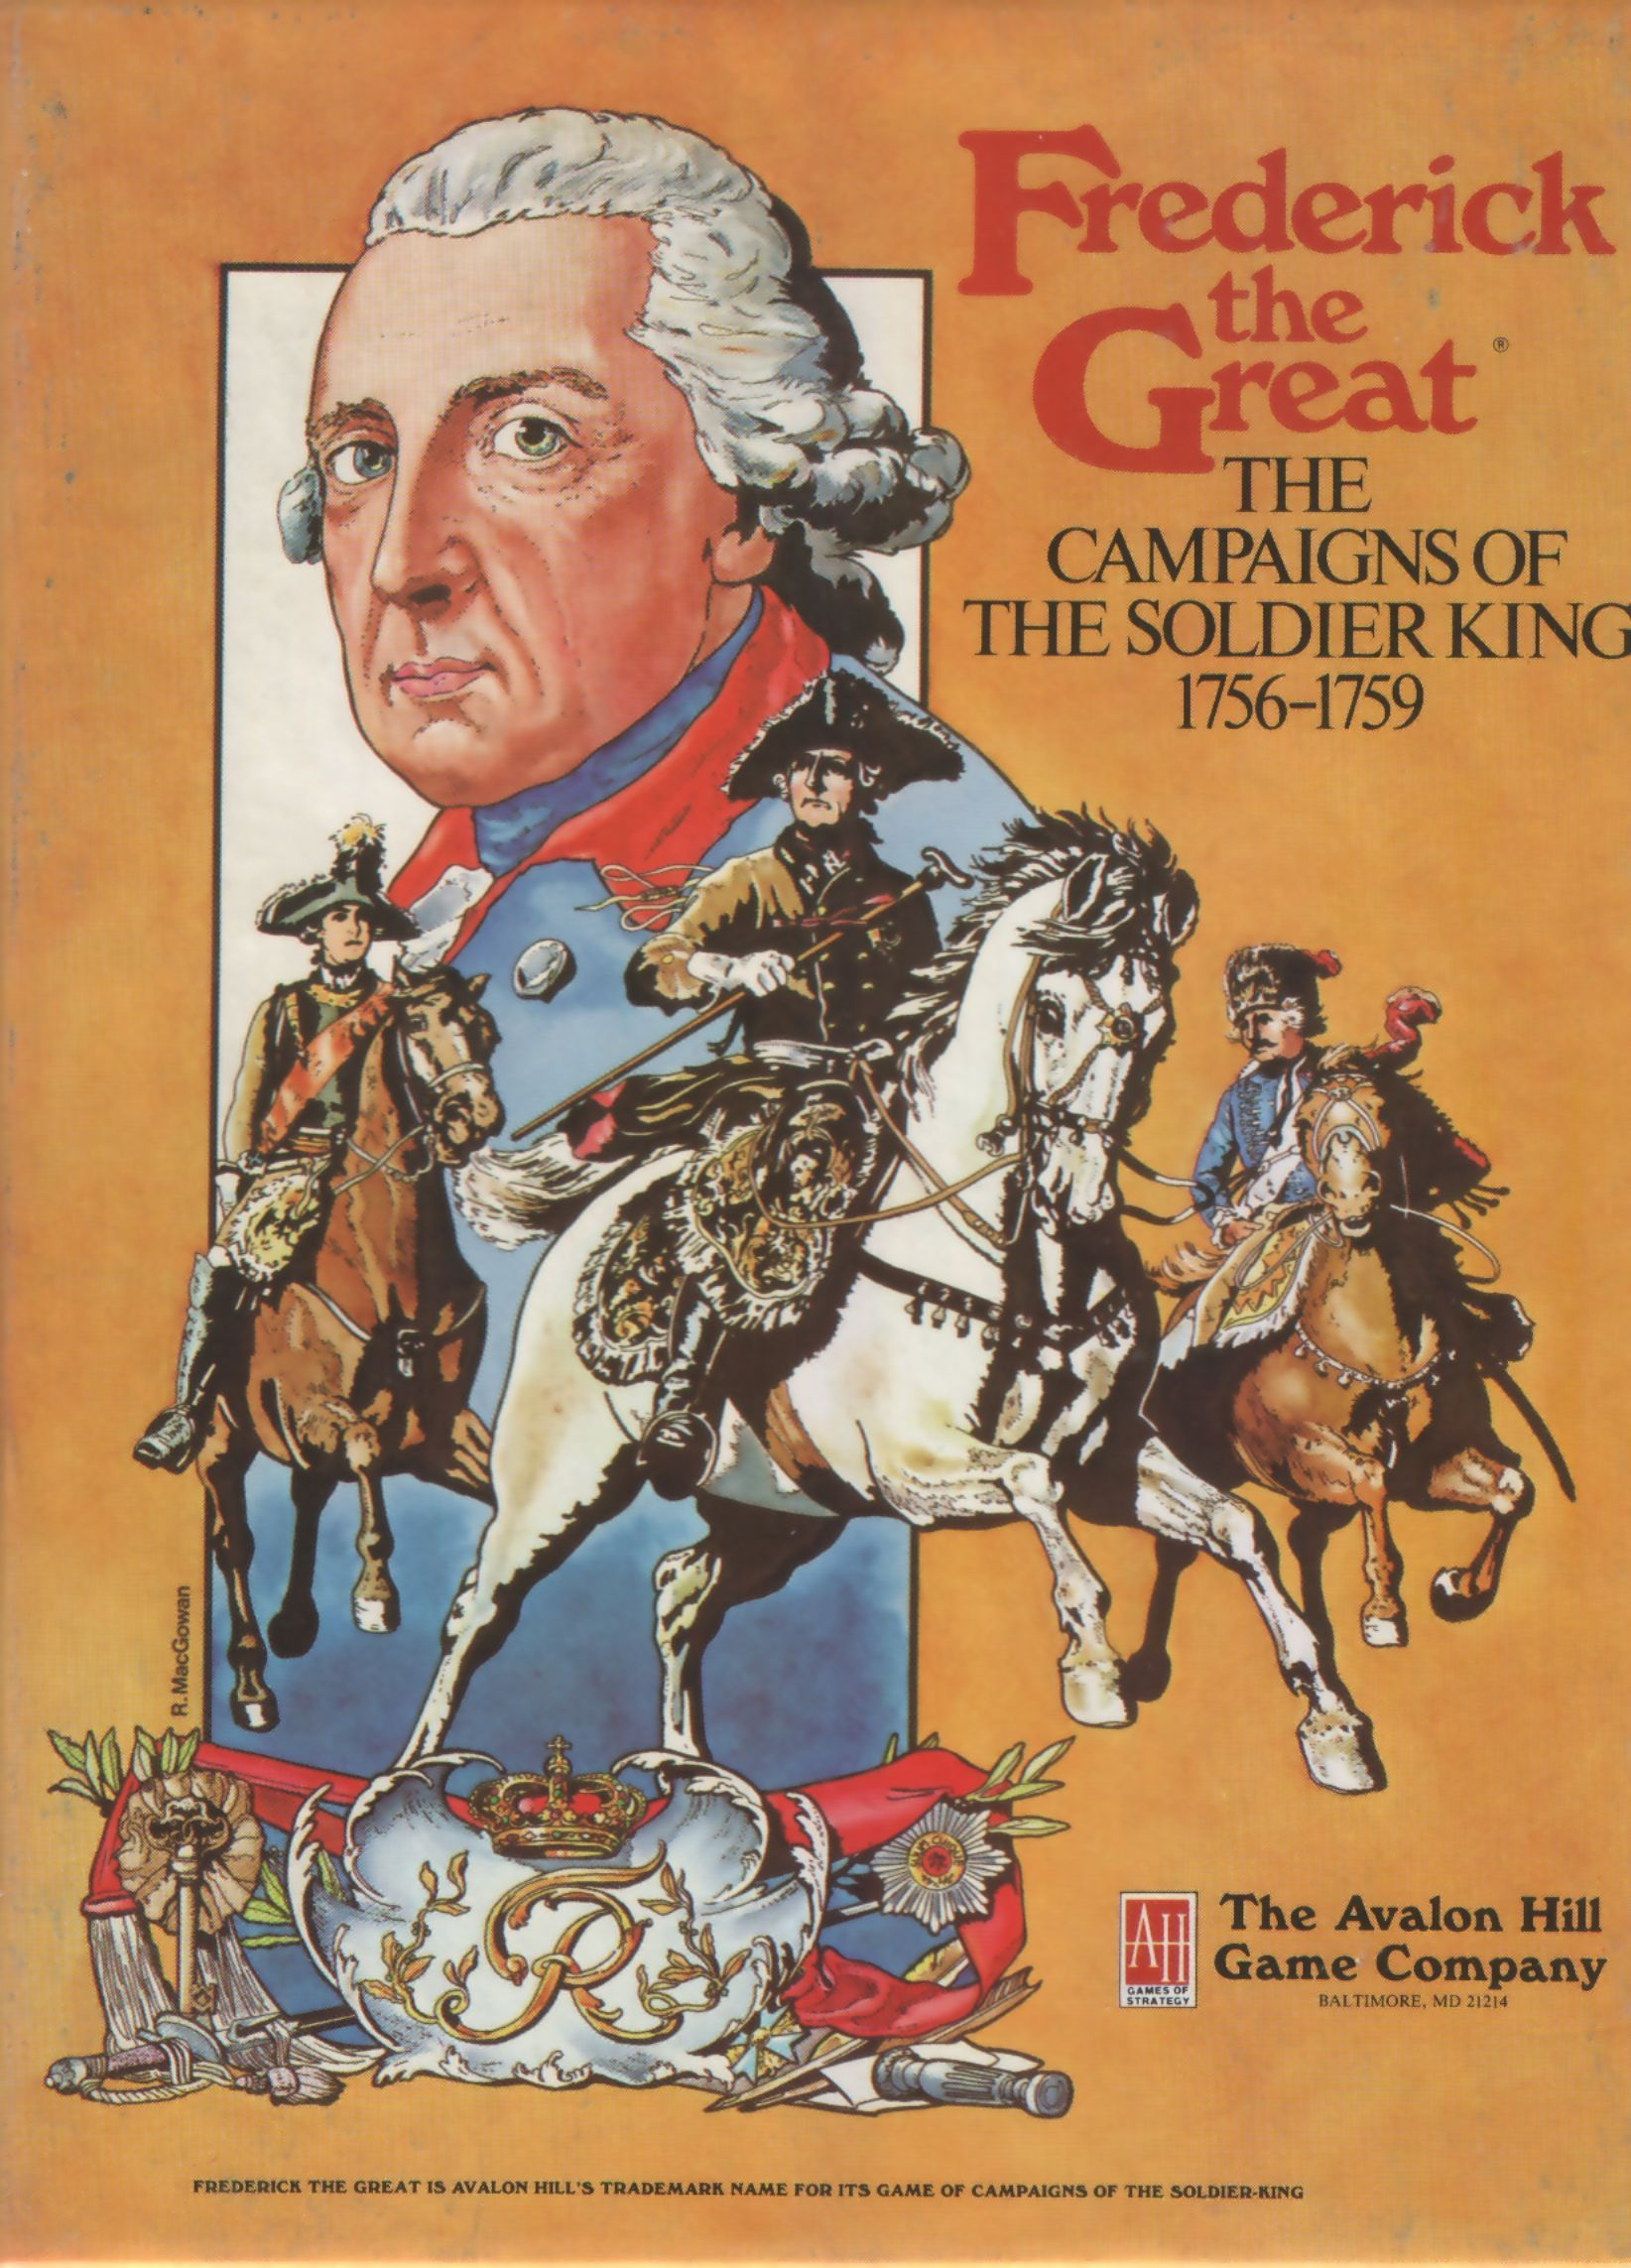 Frederick the Great: The Campaigns of The Soldier King 1756-1759